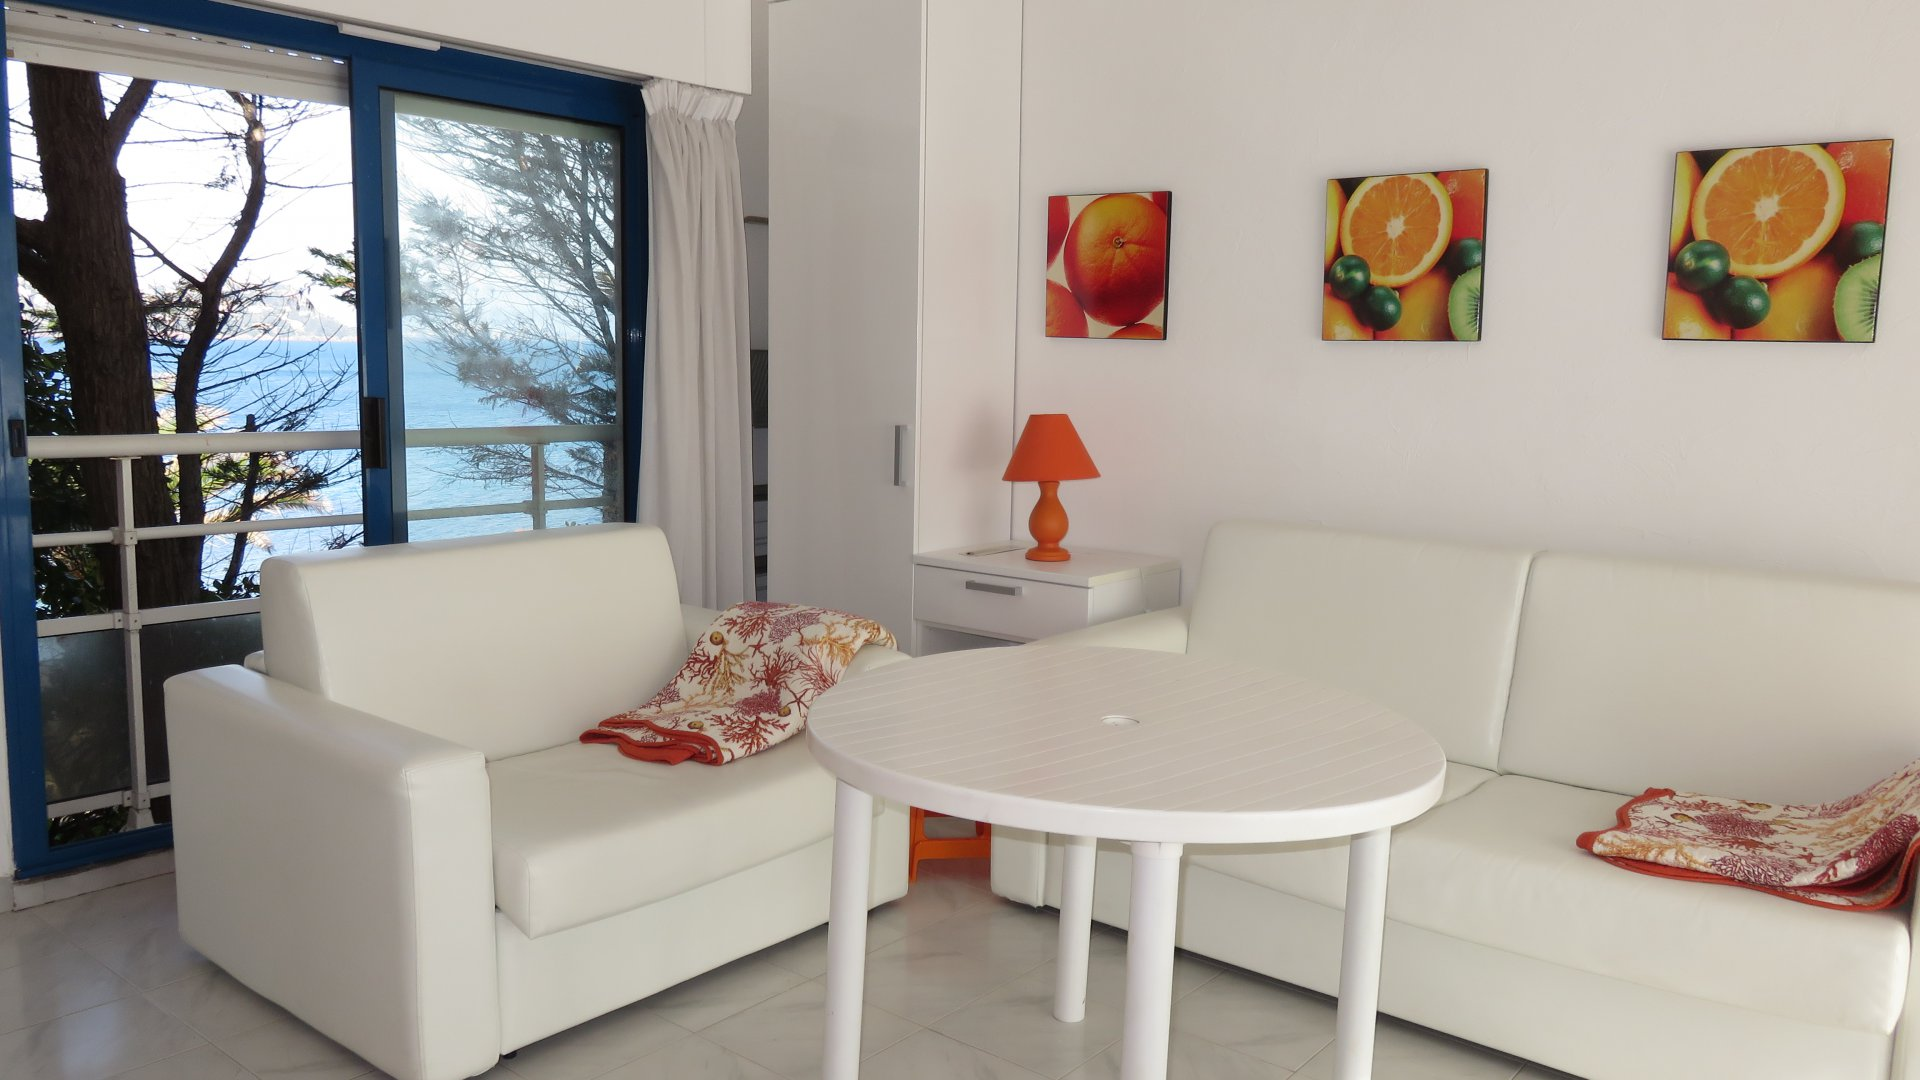 Apartment 2 rooms with 41,85 m²